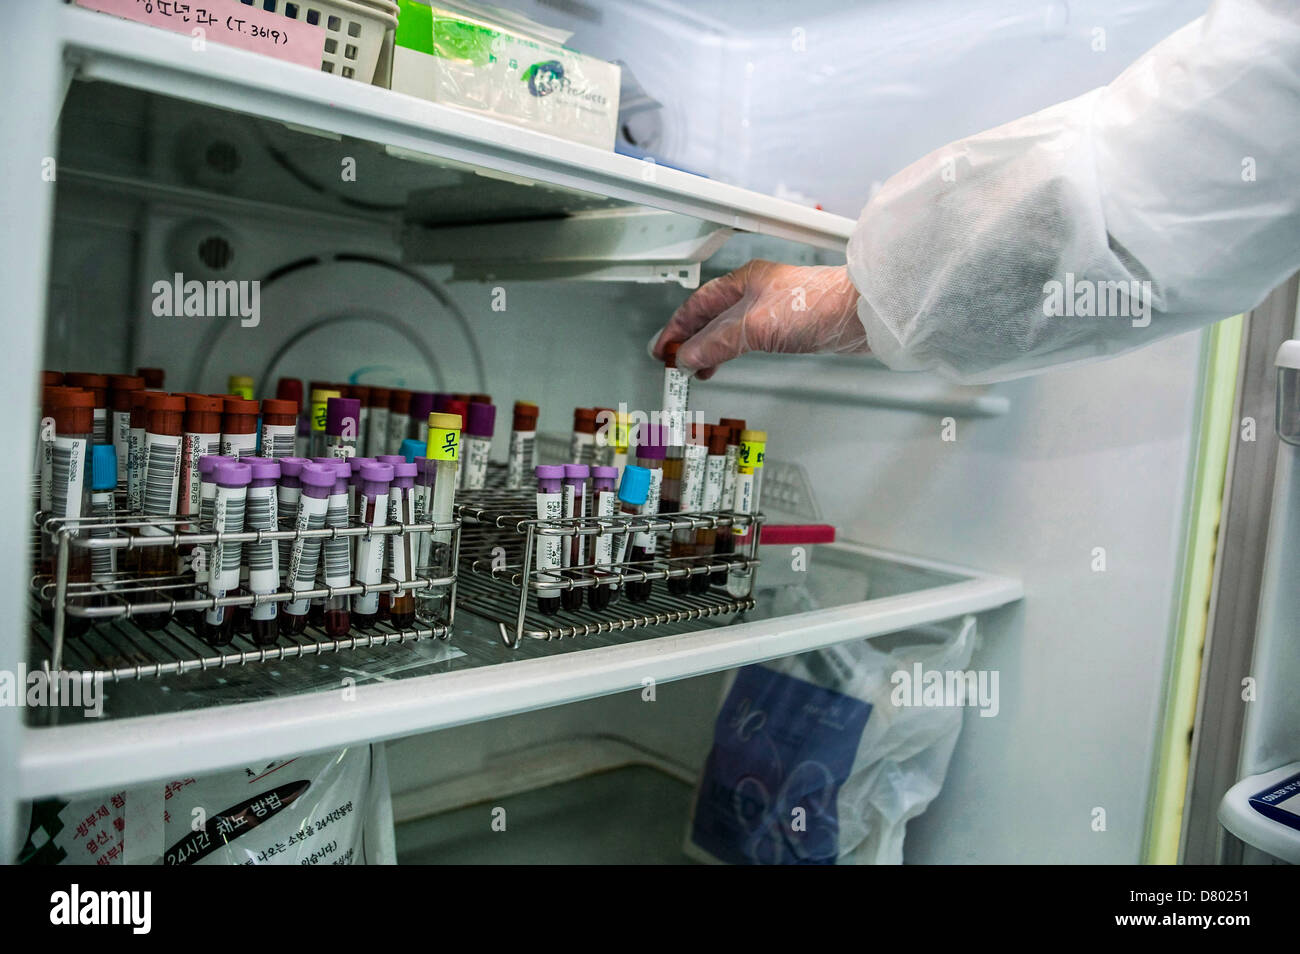 Blood samples are stored in a hospital refrigerator, during the procedure of investigation. - Stock Image